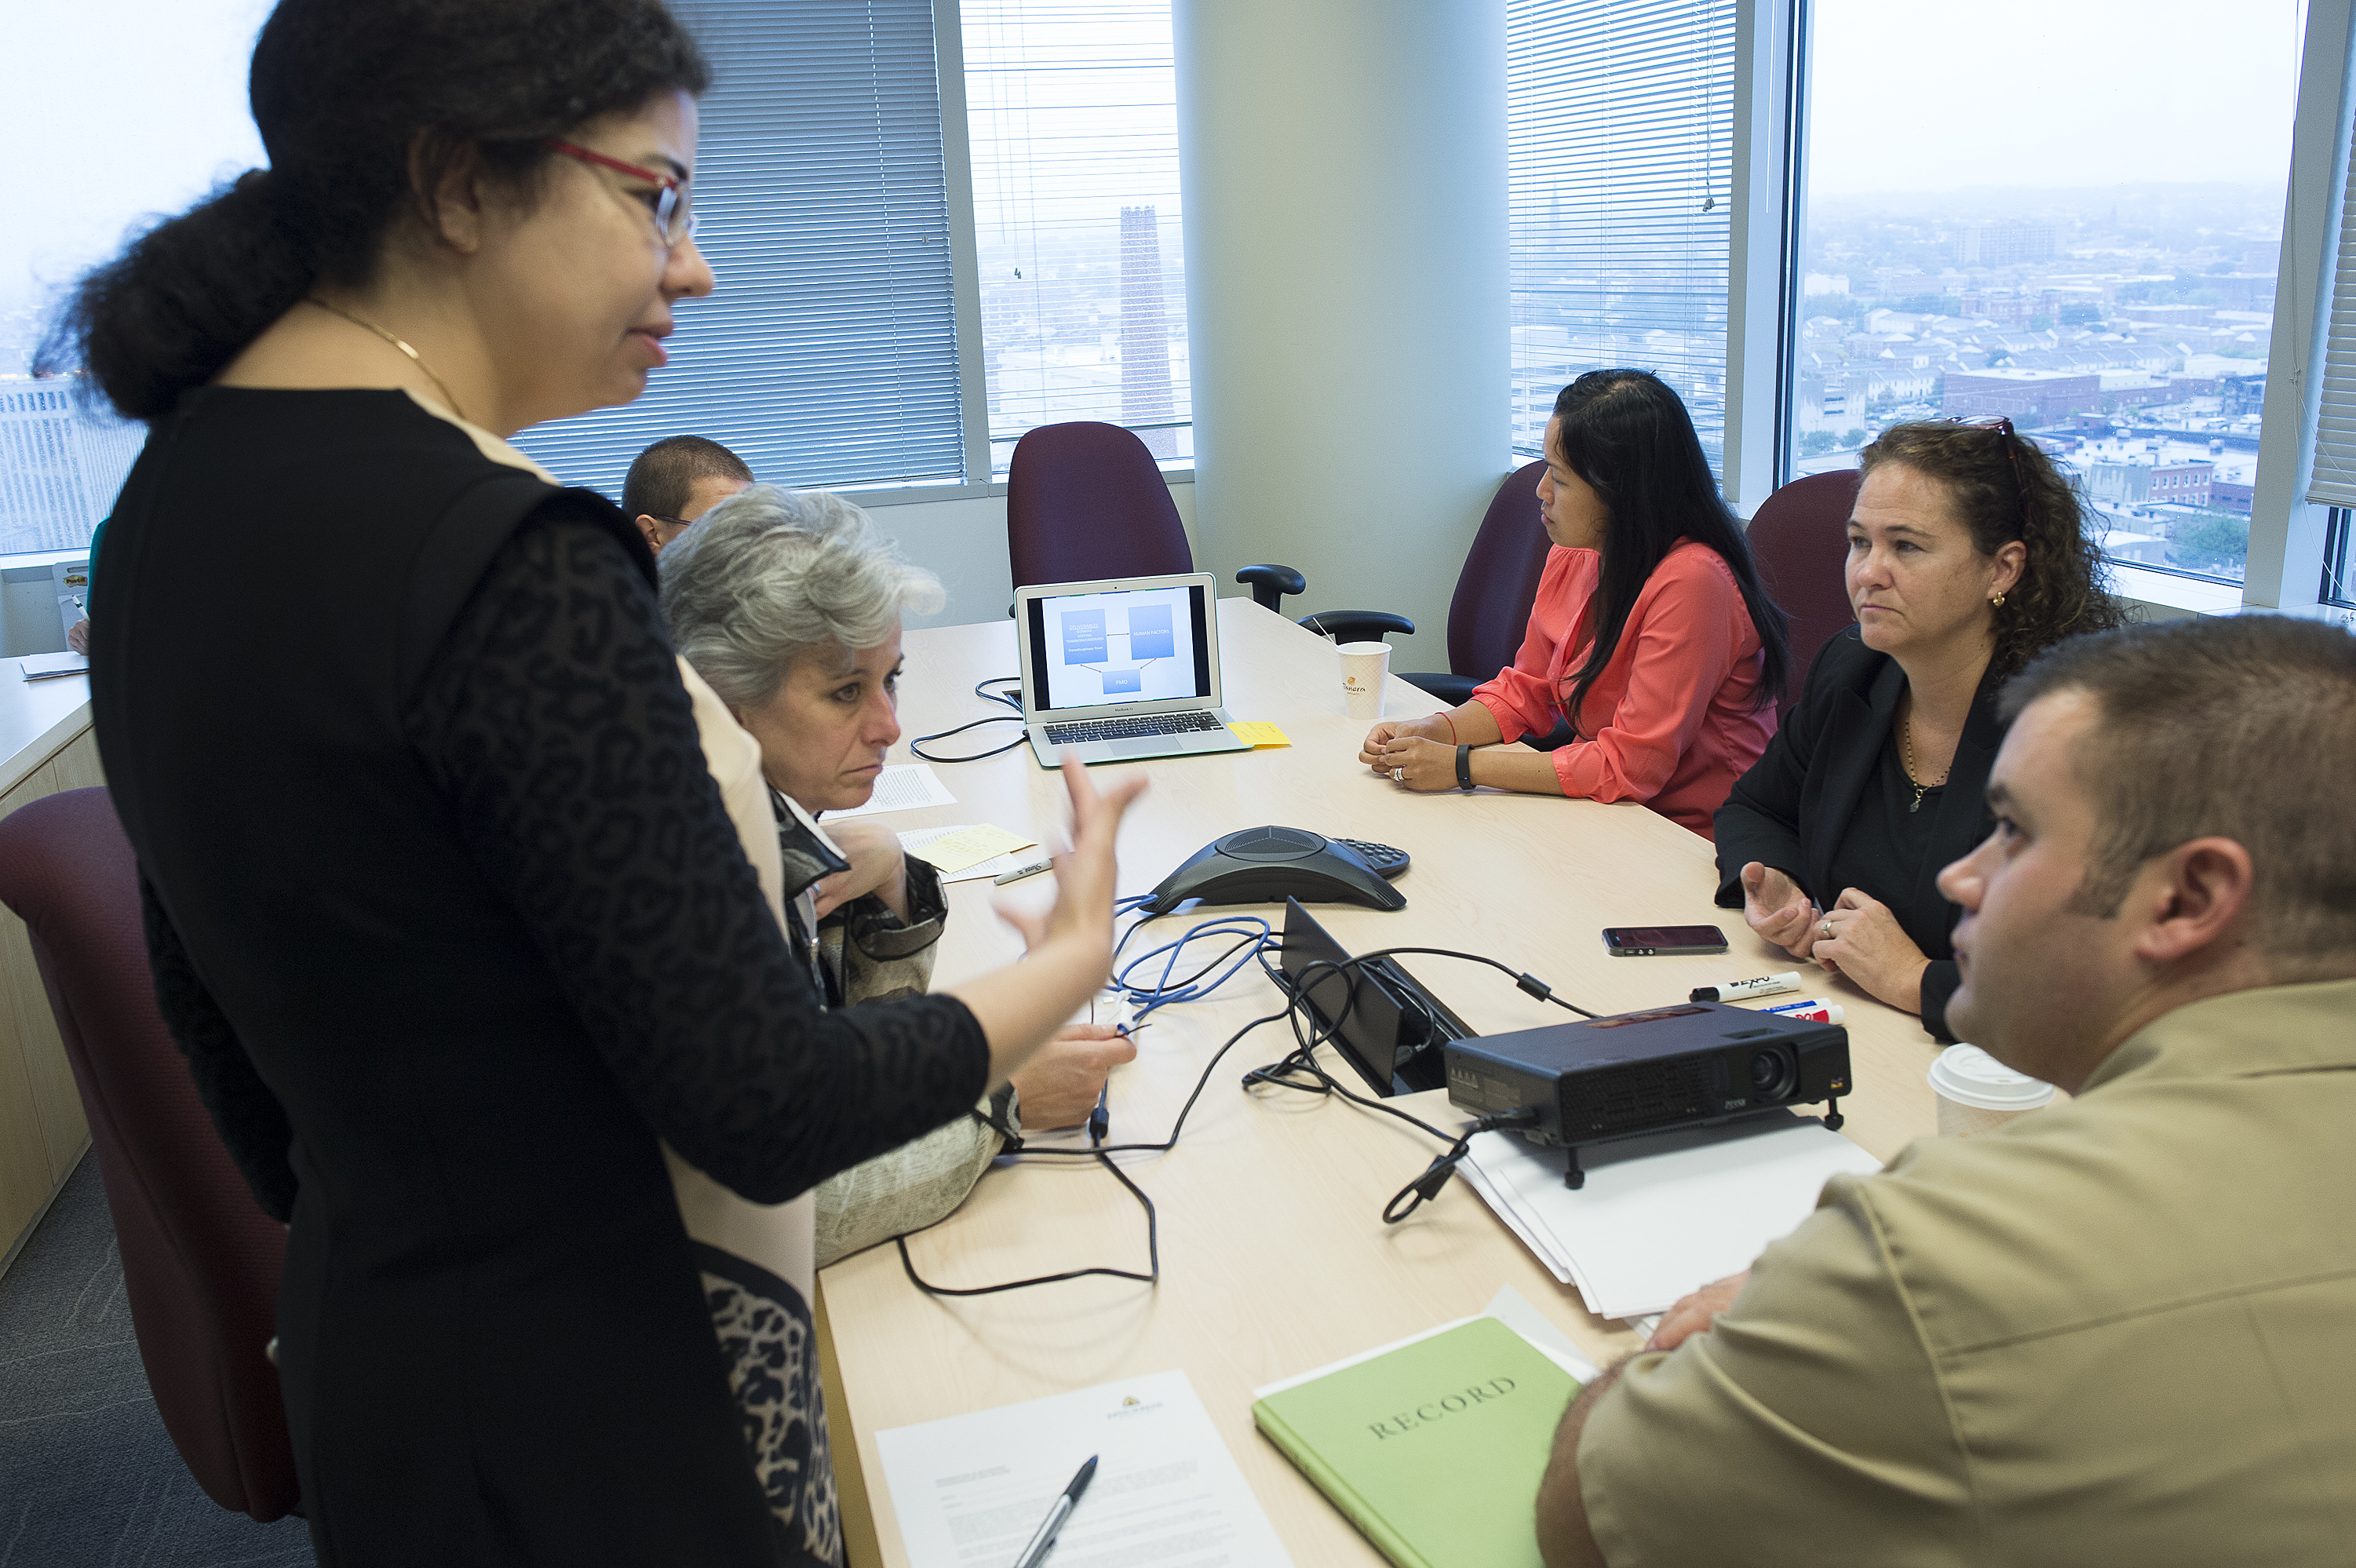 Ayse Gurses at a group discussion